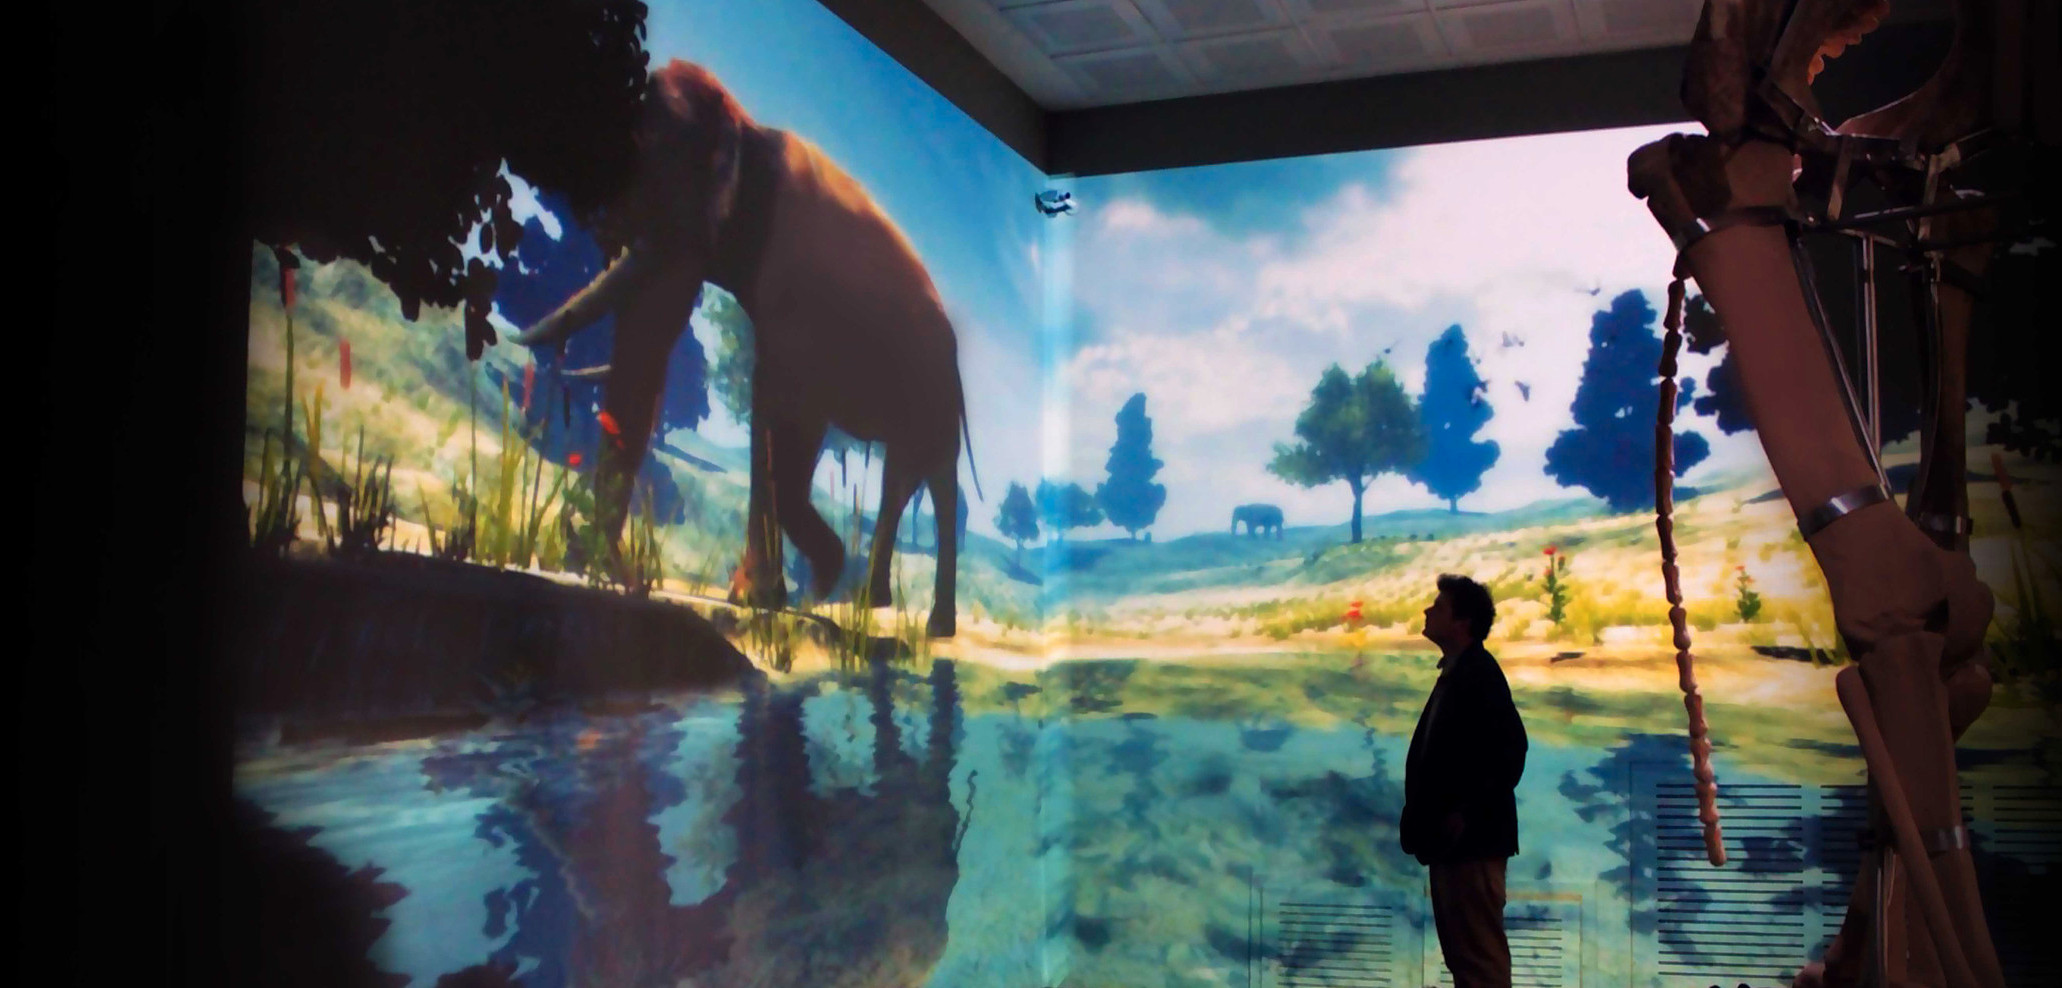 interactive virtual life simulation of the extinct Maras elephant, Maras Museum, 2012